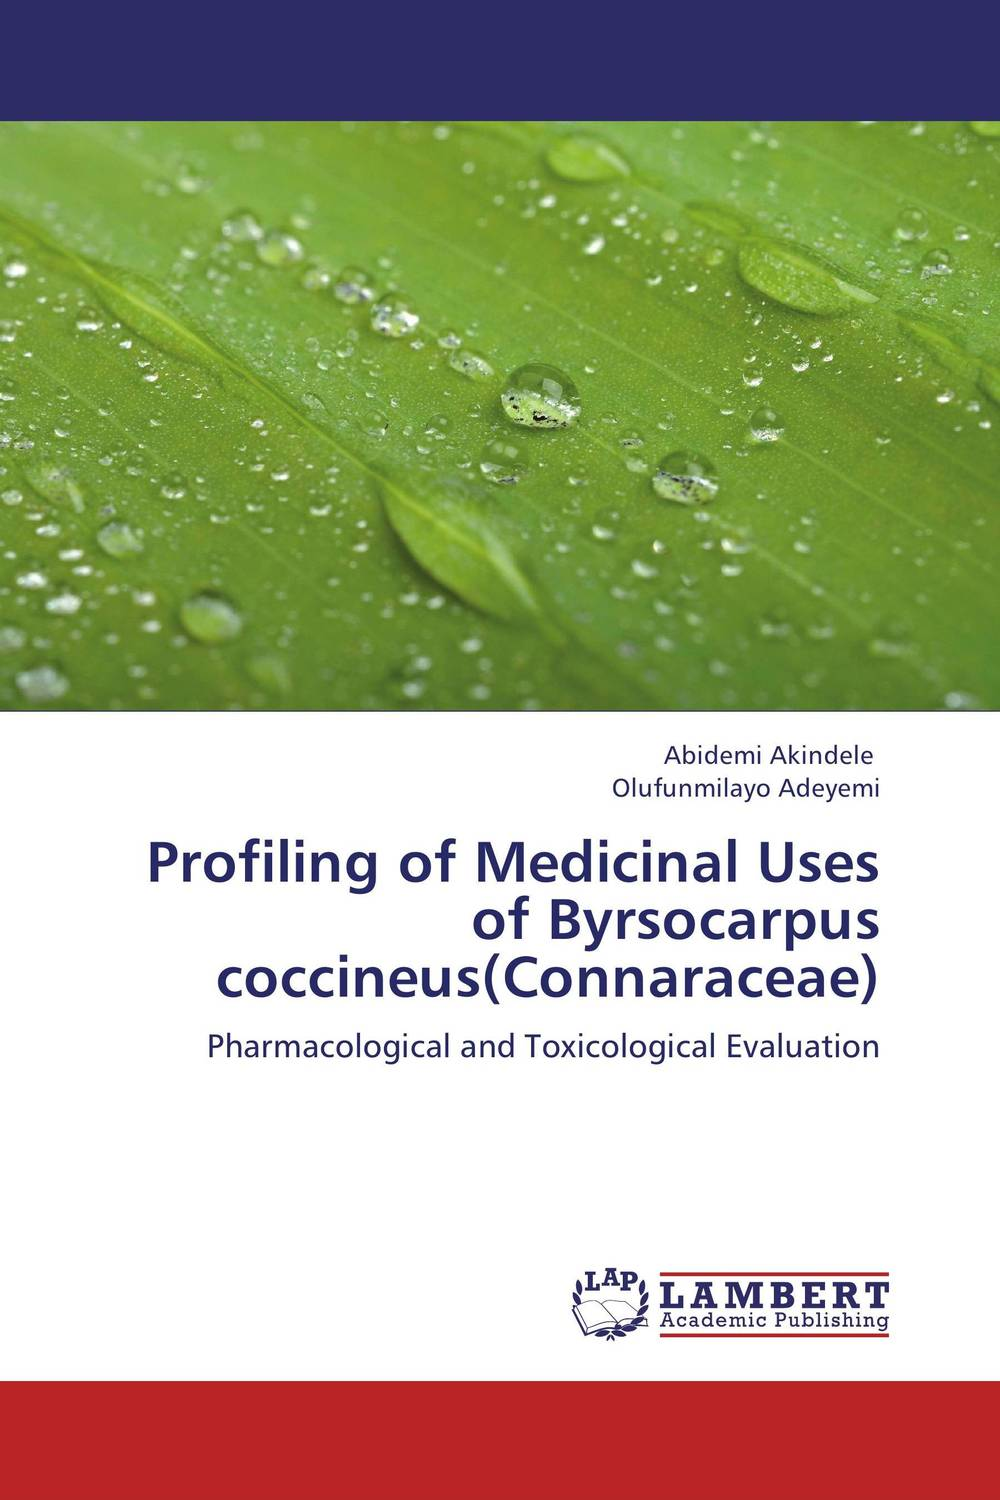 Profiling of Medicinal Uses of Byrsocarpus coccineus(Connaraceae) impurity profiling of drugs and pharmaceuticals